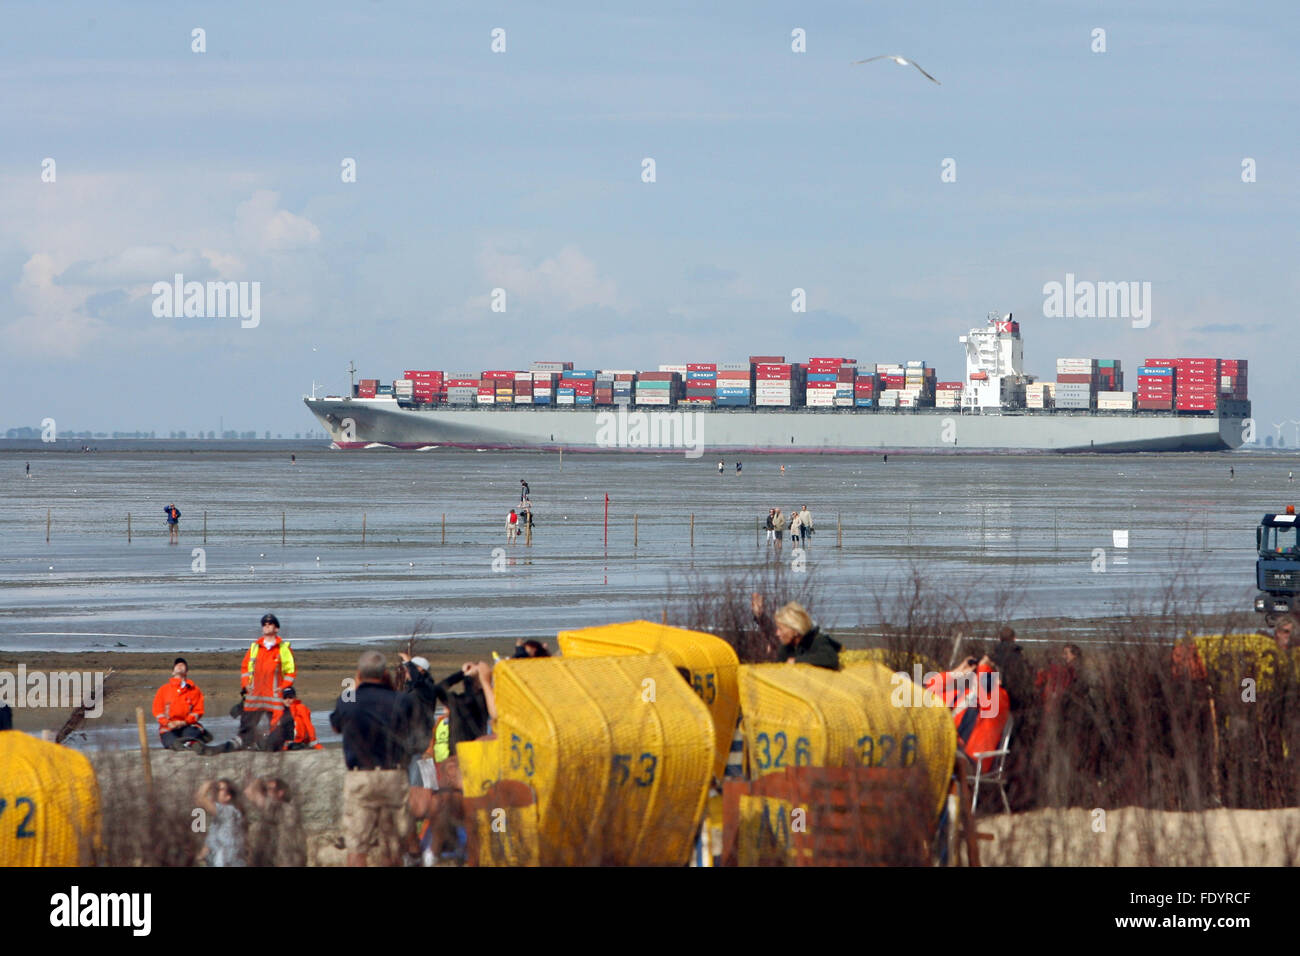 Cuxhaven, Germany, loaded container ship off the coast - Stock Image